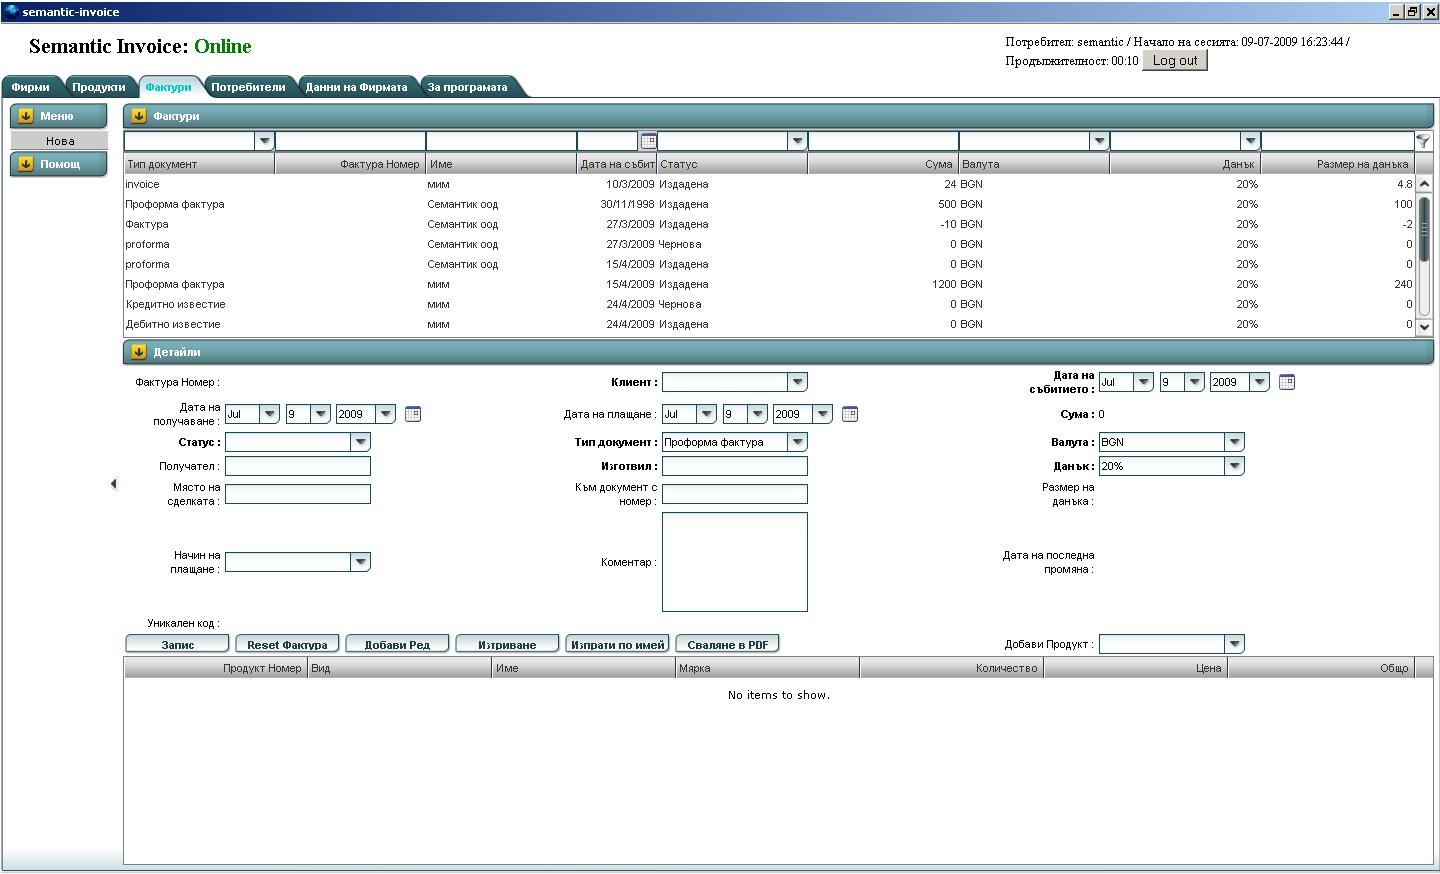 web based invoice free download onblogpw web based invoice software